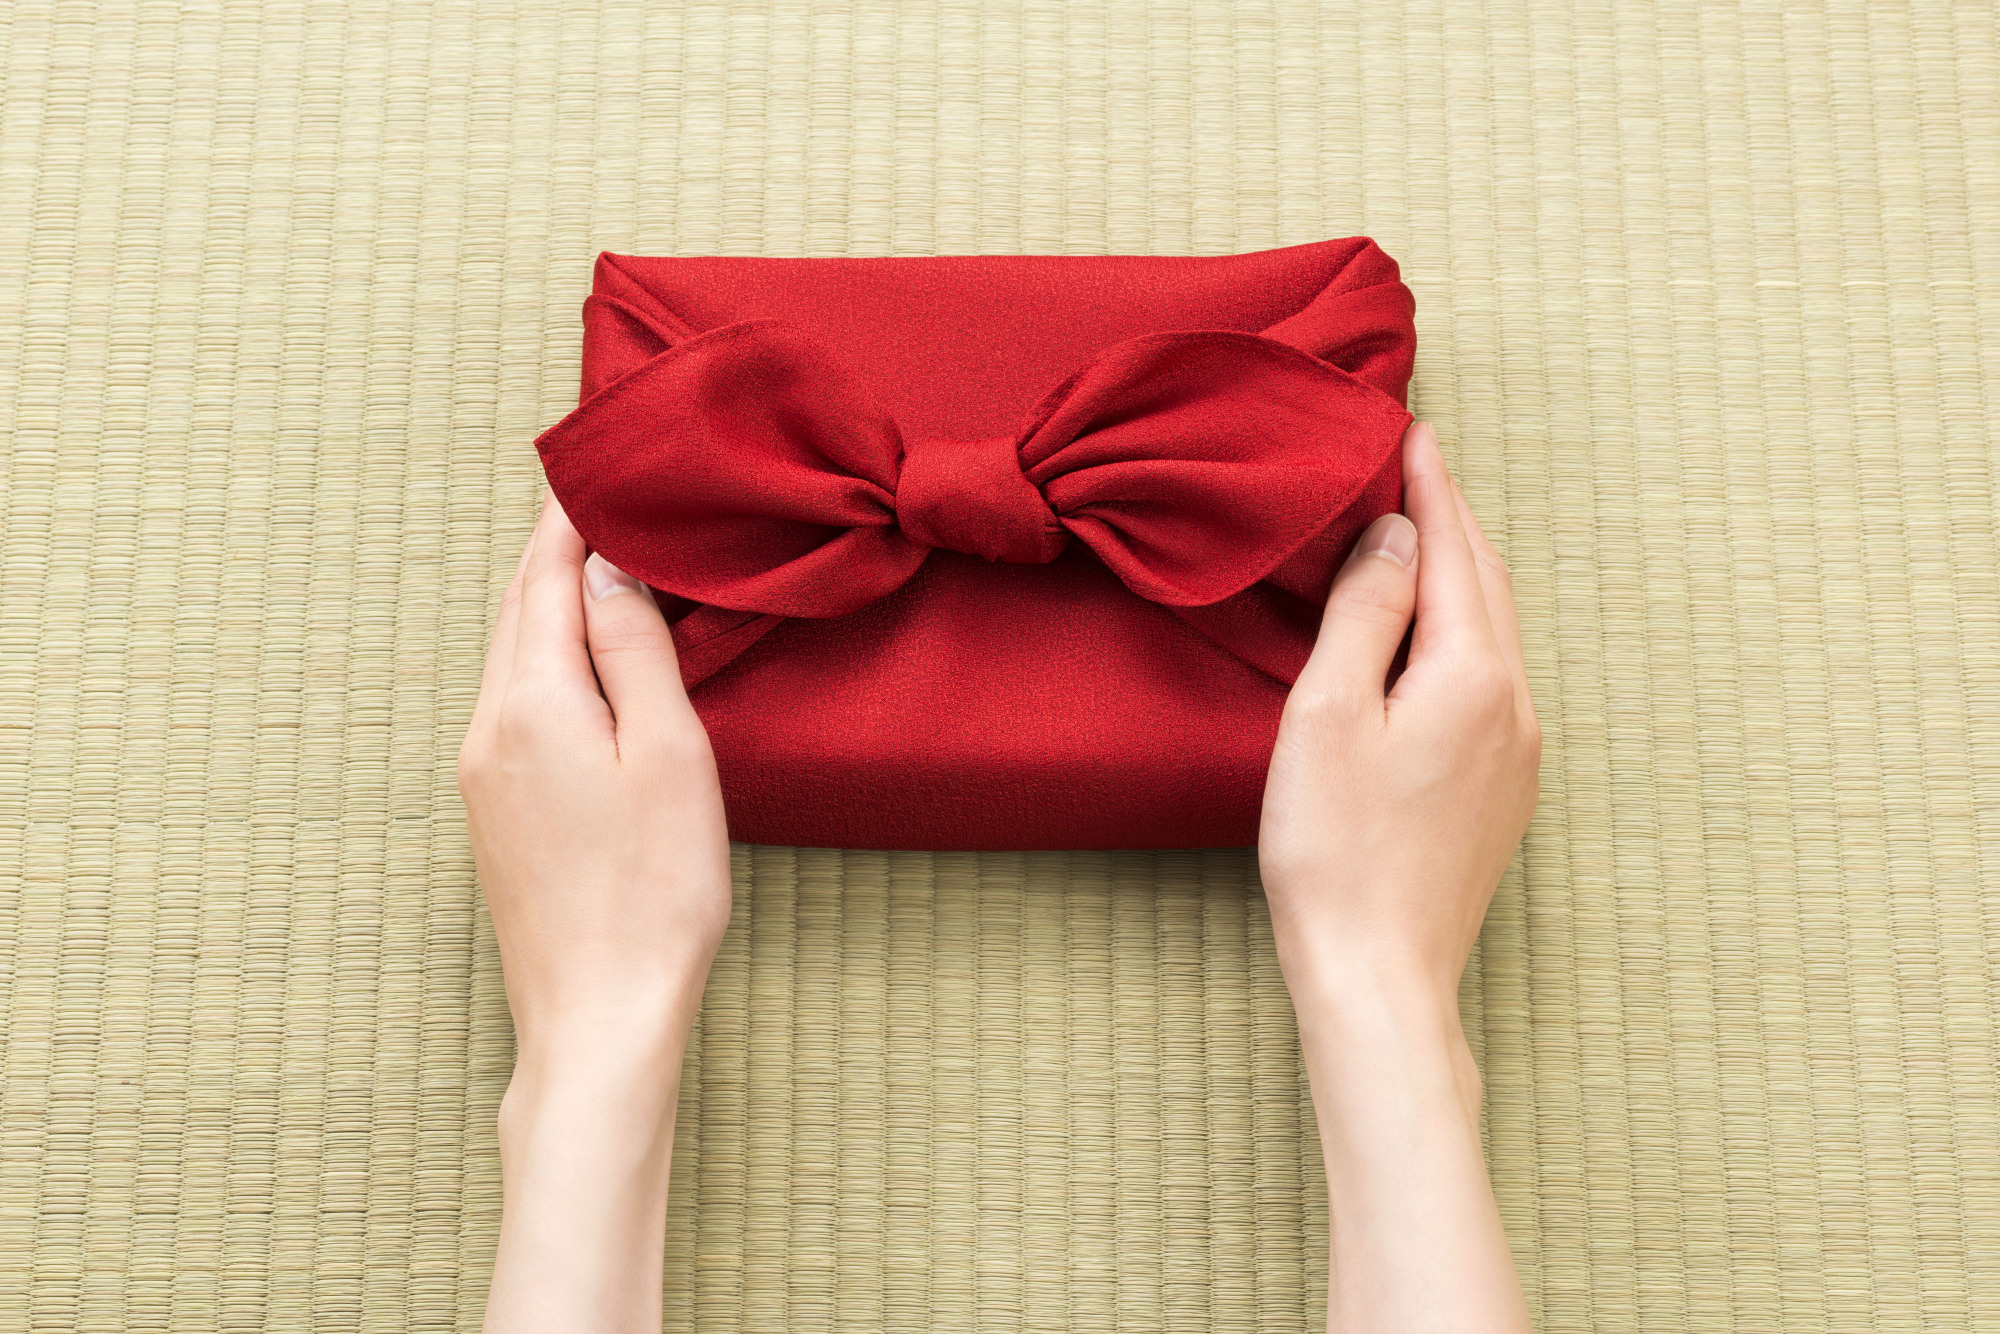 Year-end wraps: Wrapping a present in traditional 風呂敷 (furoshiki, wrapping cloth) might be a more environmentally friendly way to deliver your gifts this holiday season. | GETTY IMAGES